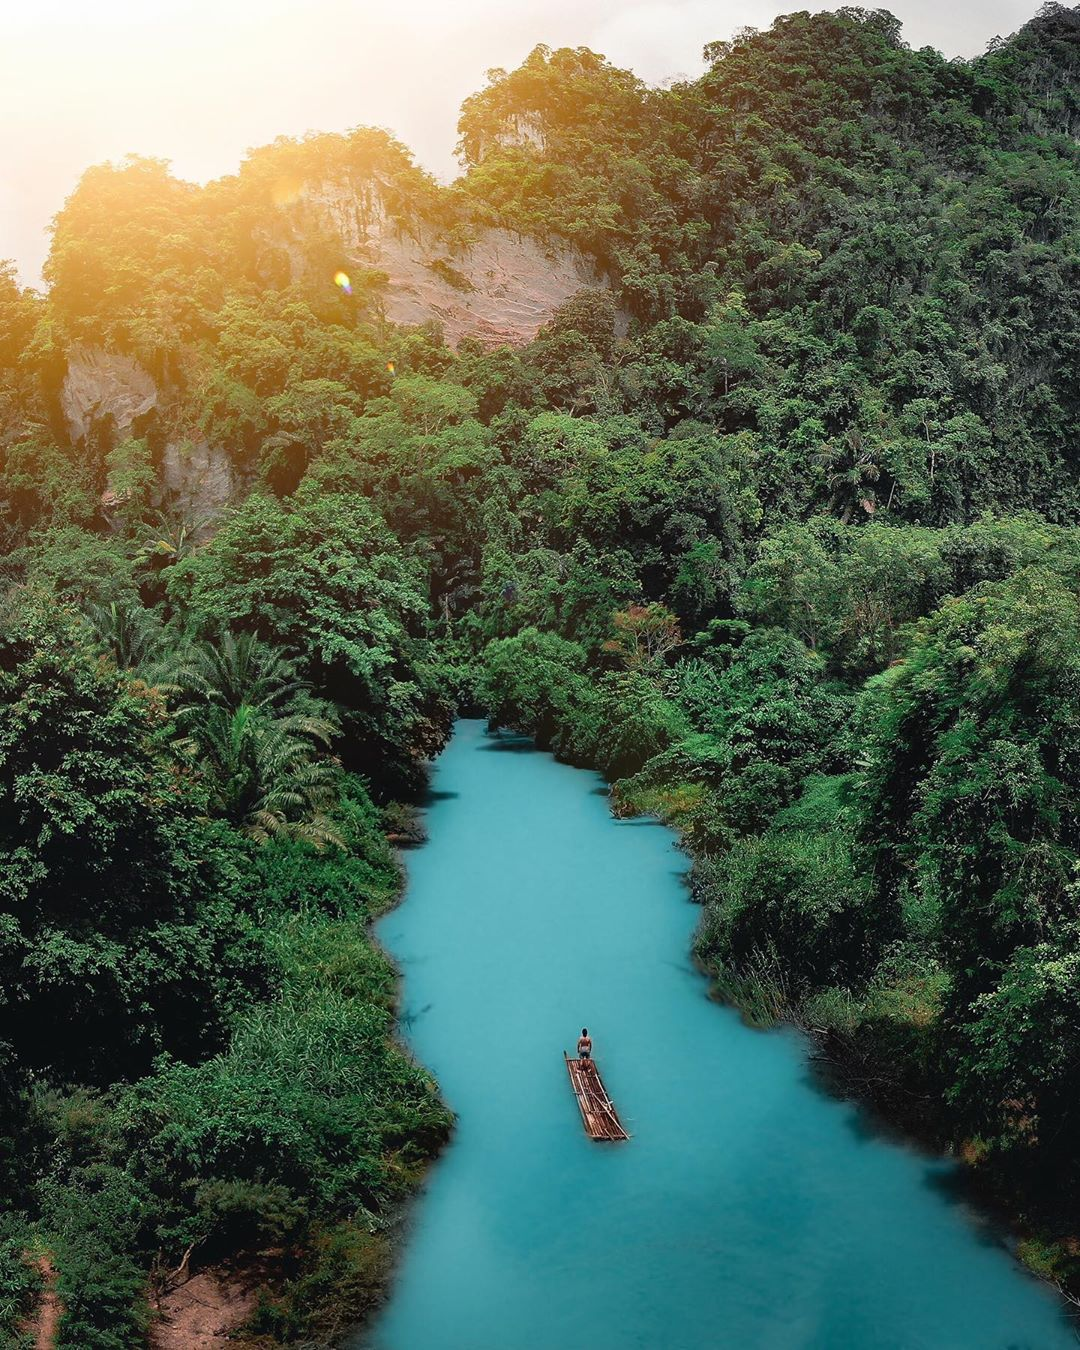 An old canoe on Cheow Lan Lake overlooking the jungle. Image was taken with a drone